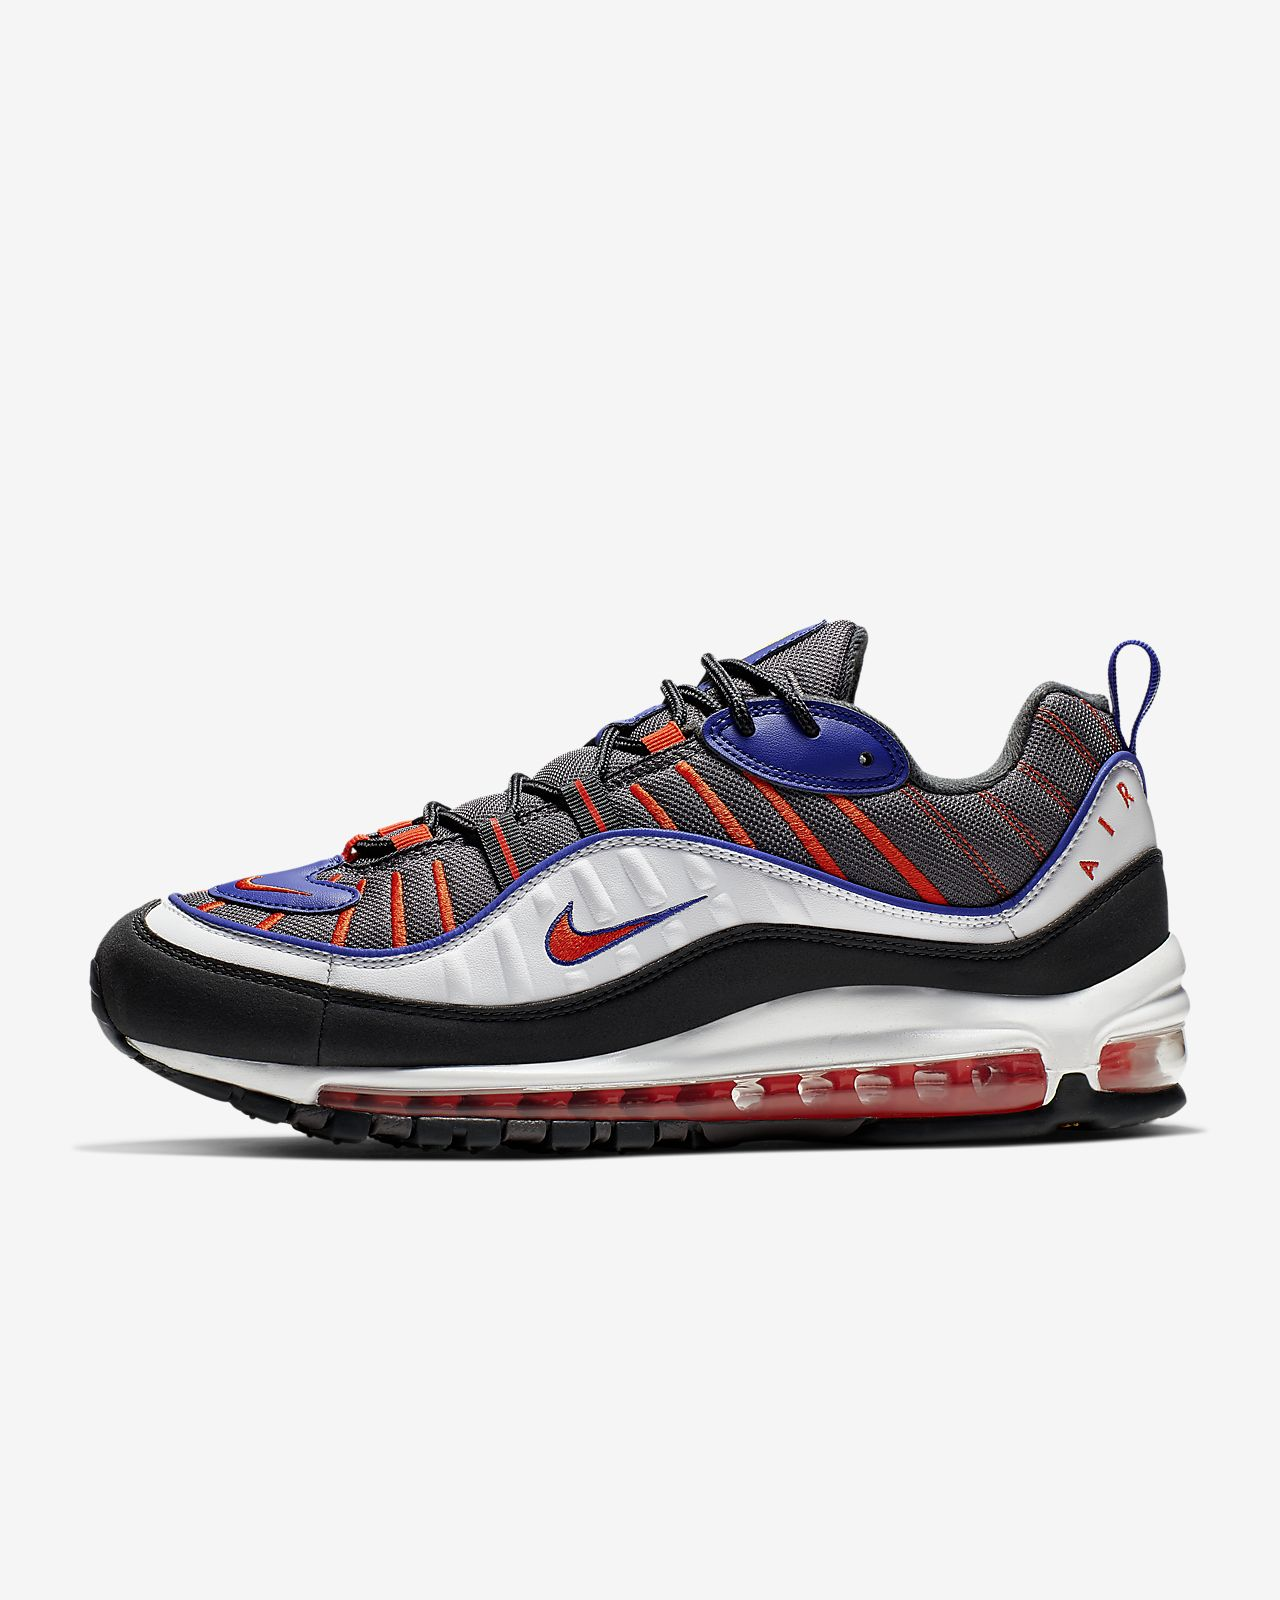 NIKE AIR MAX 98 | FRESHCOTTON